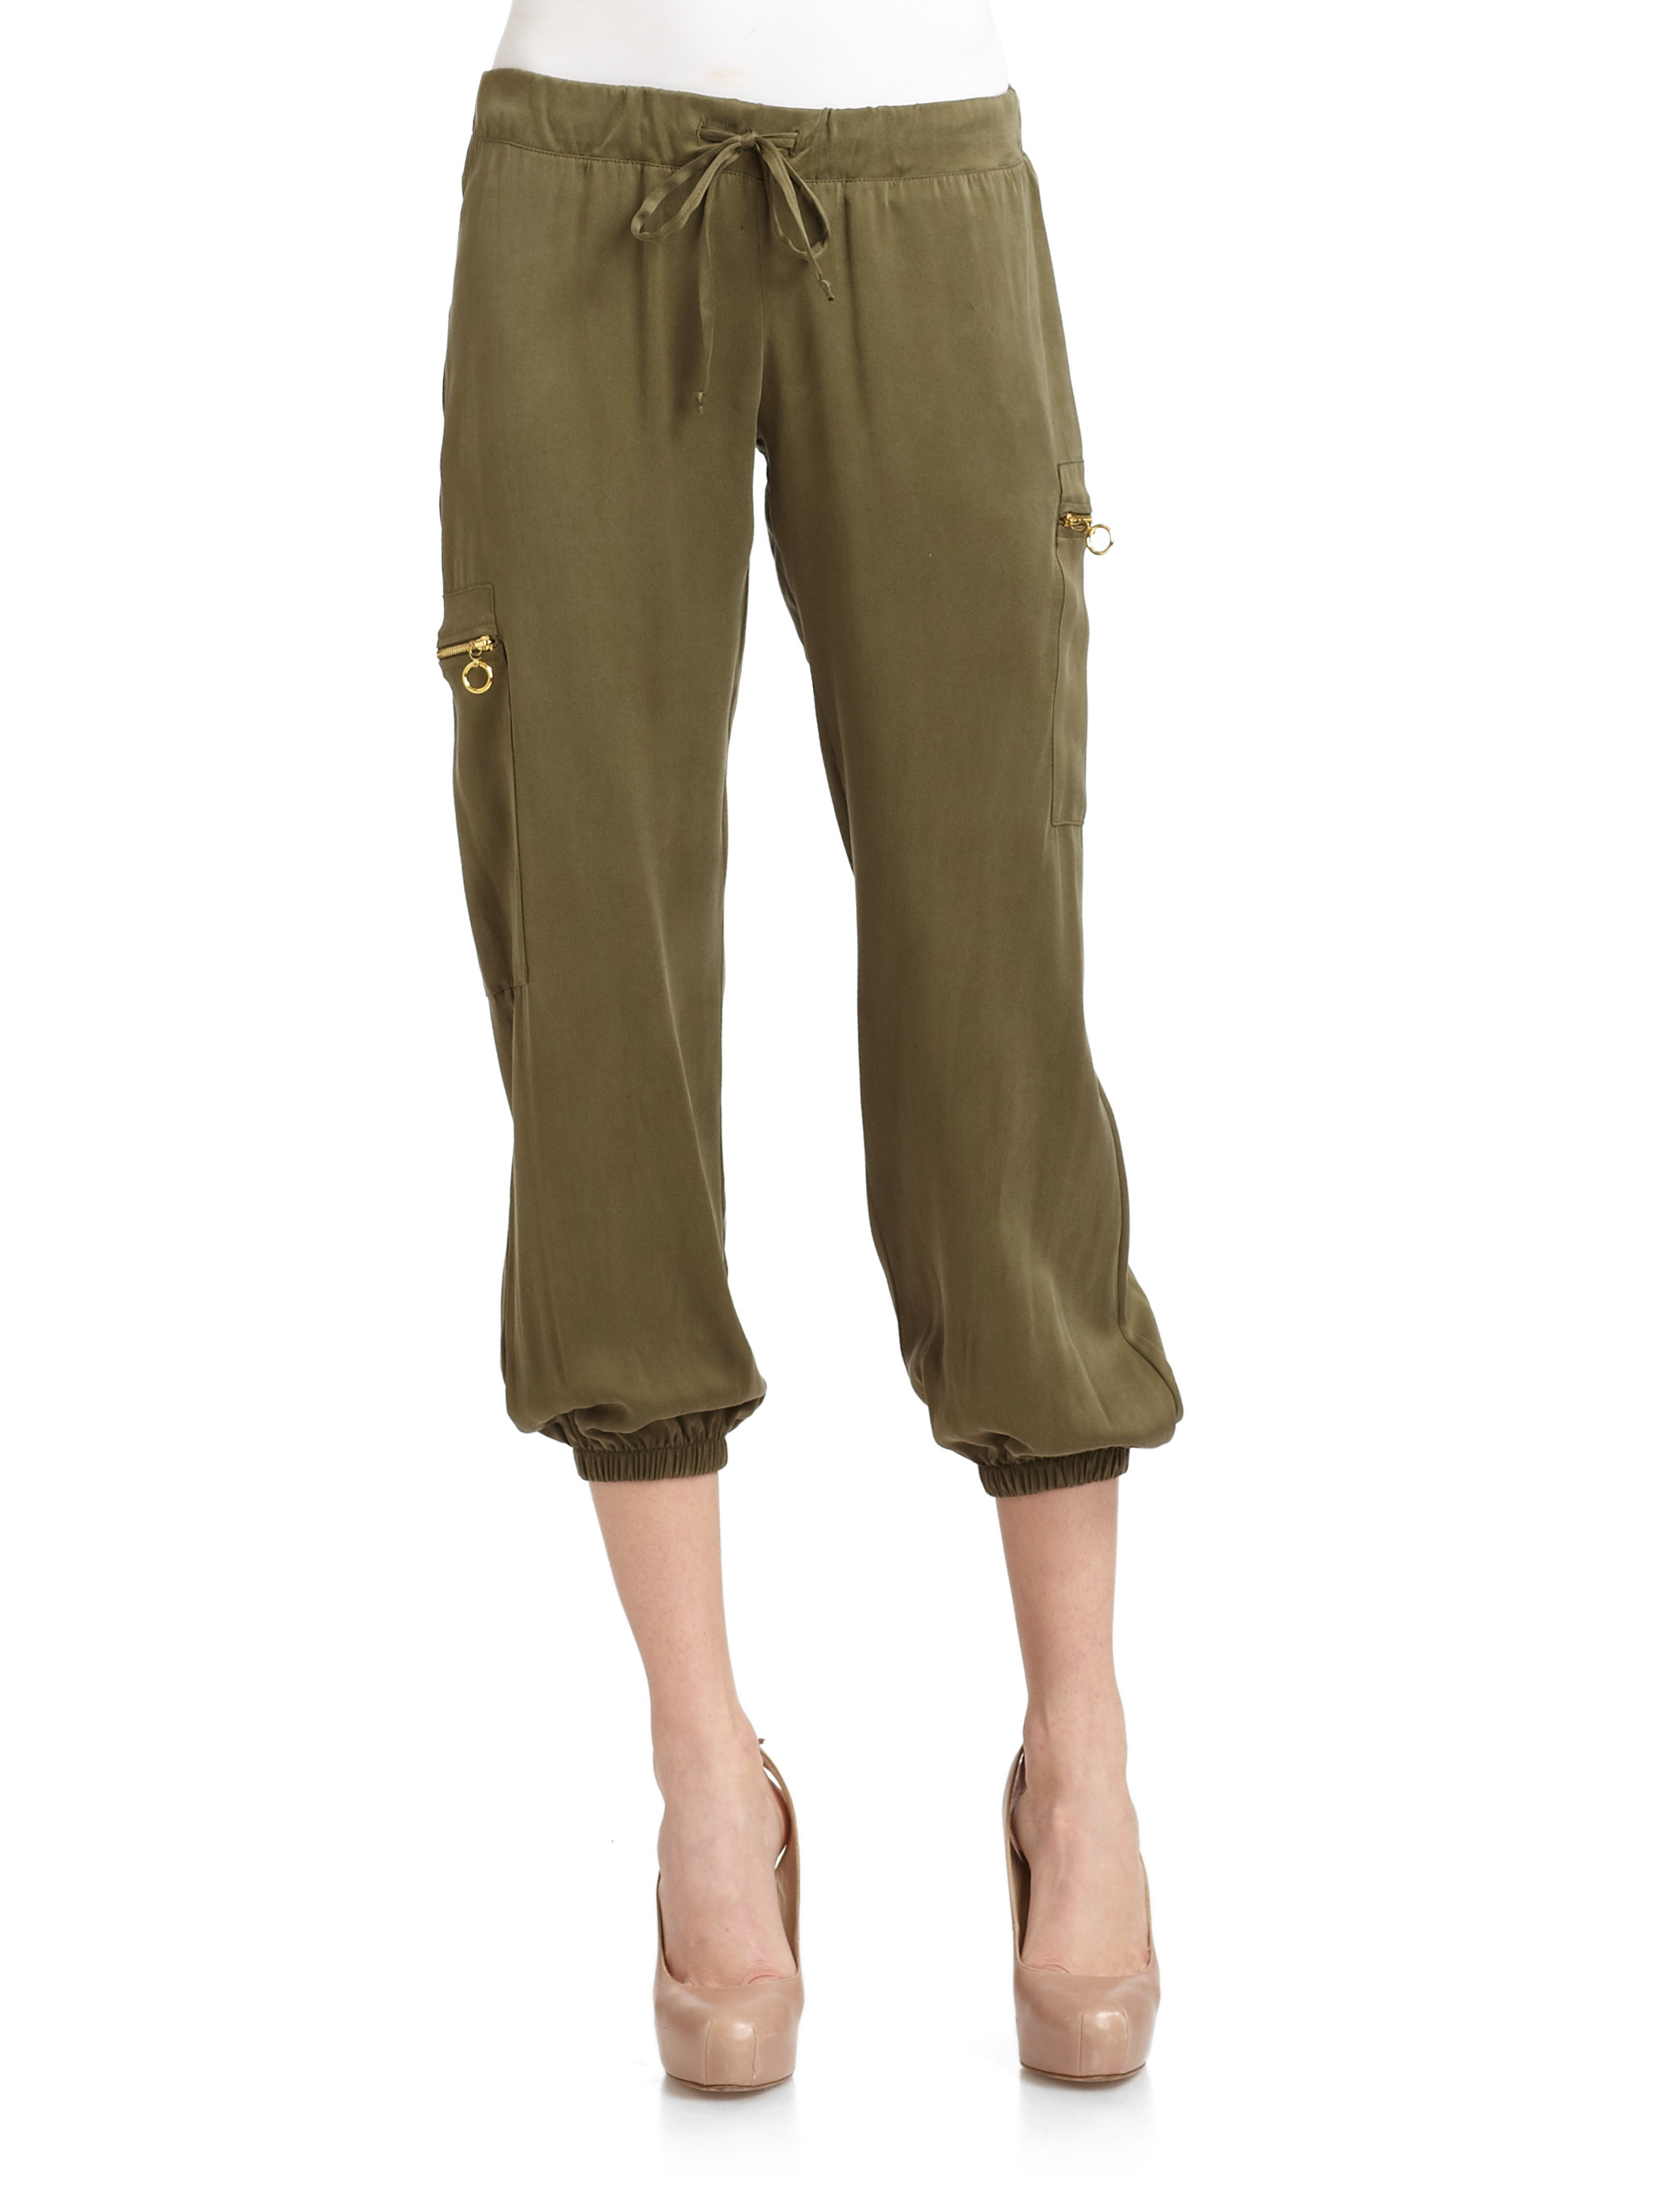 Maggie ward Sueded Silk Cargo Pants in Green